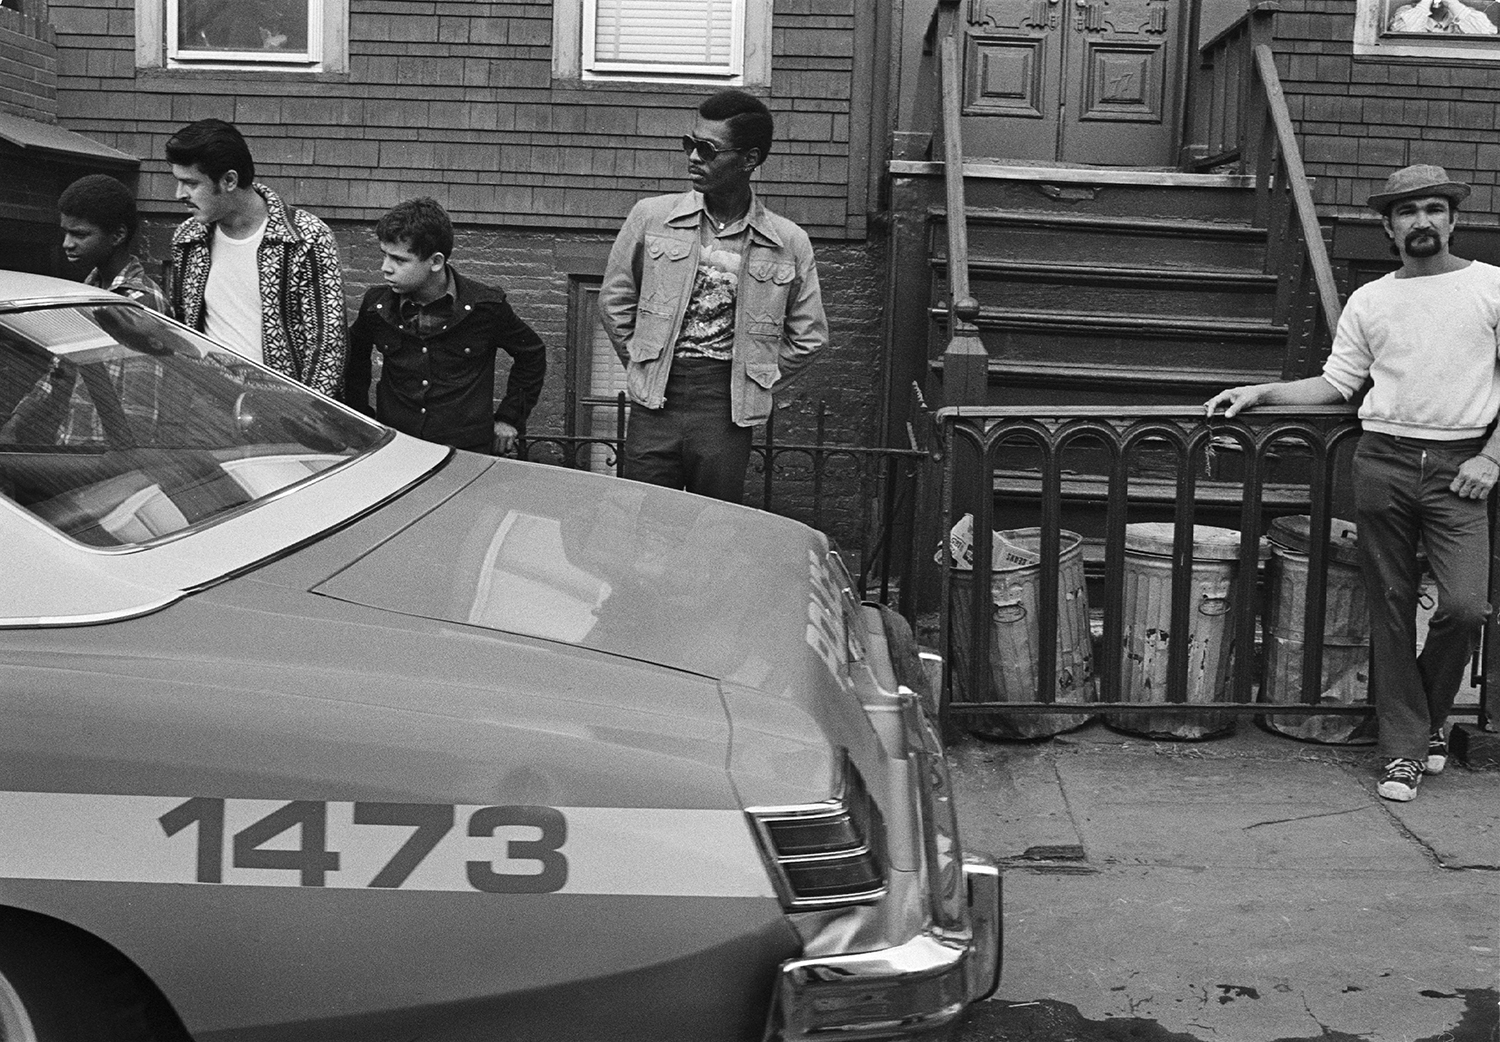 Police activity, brooklyn late 60's